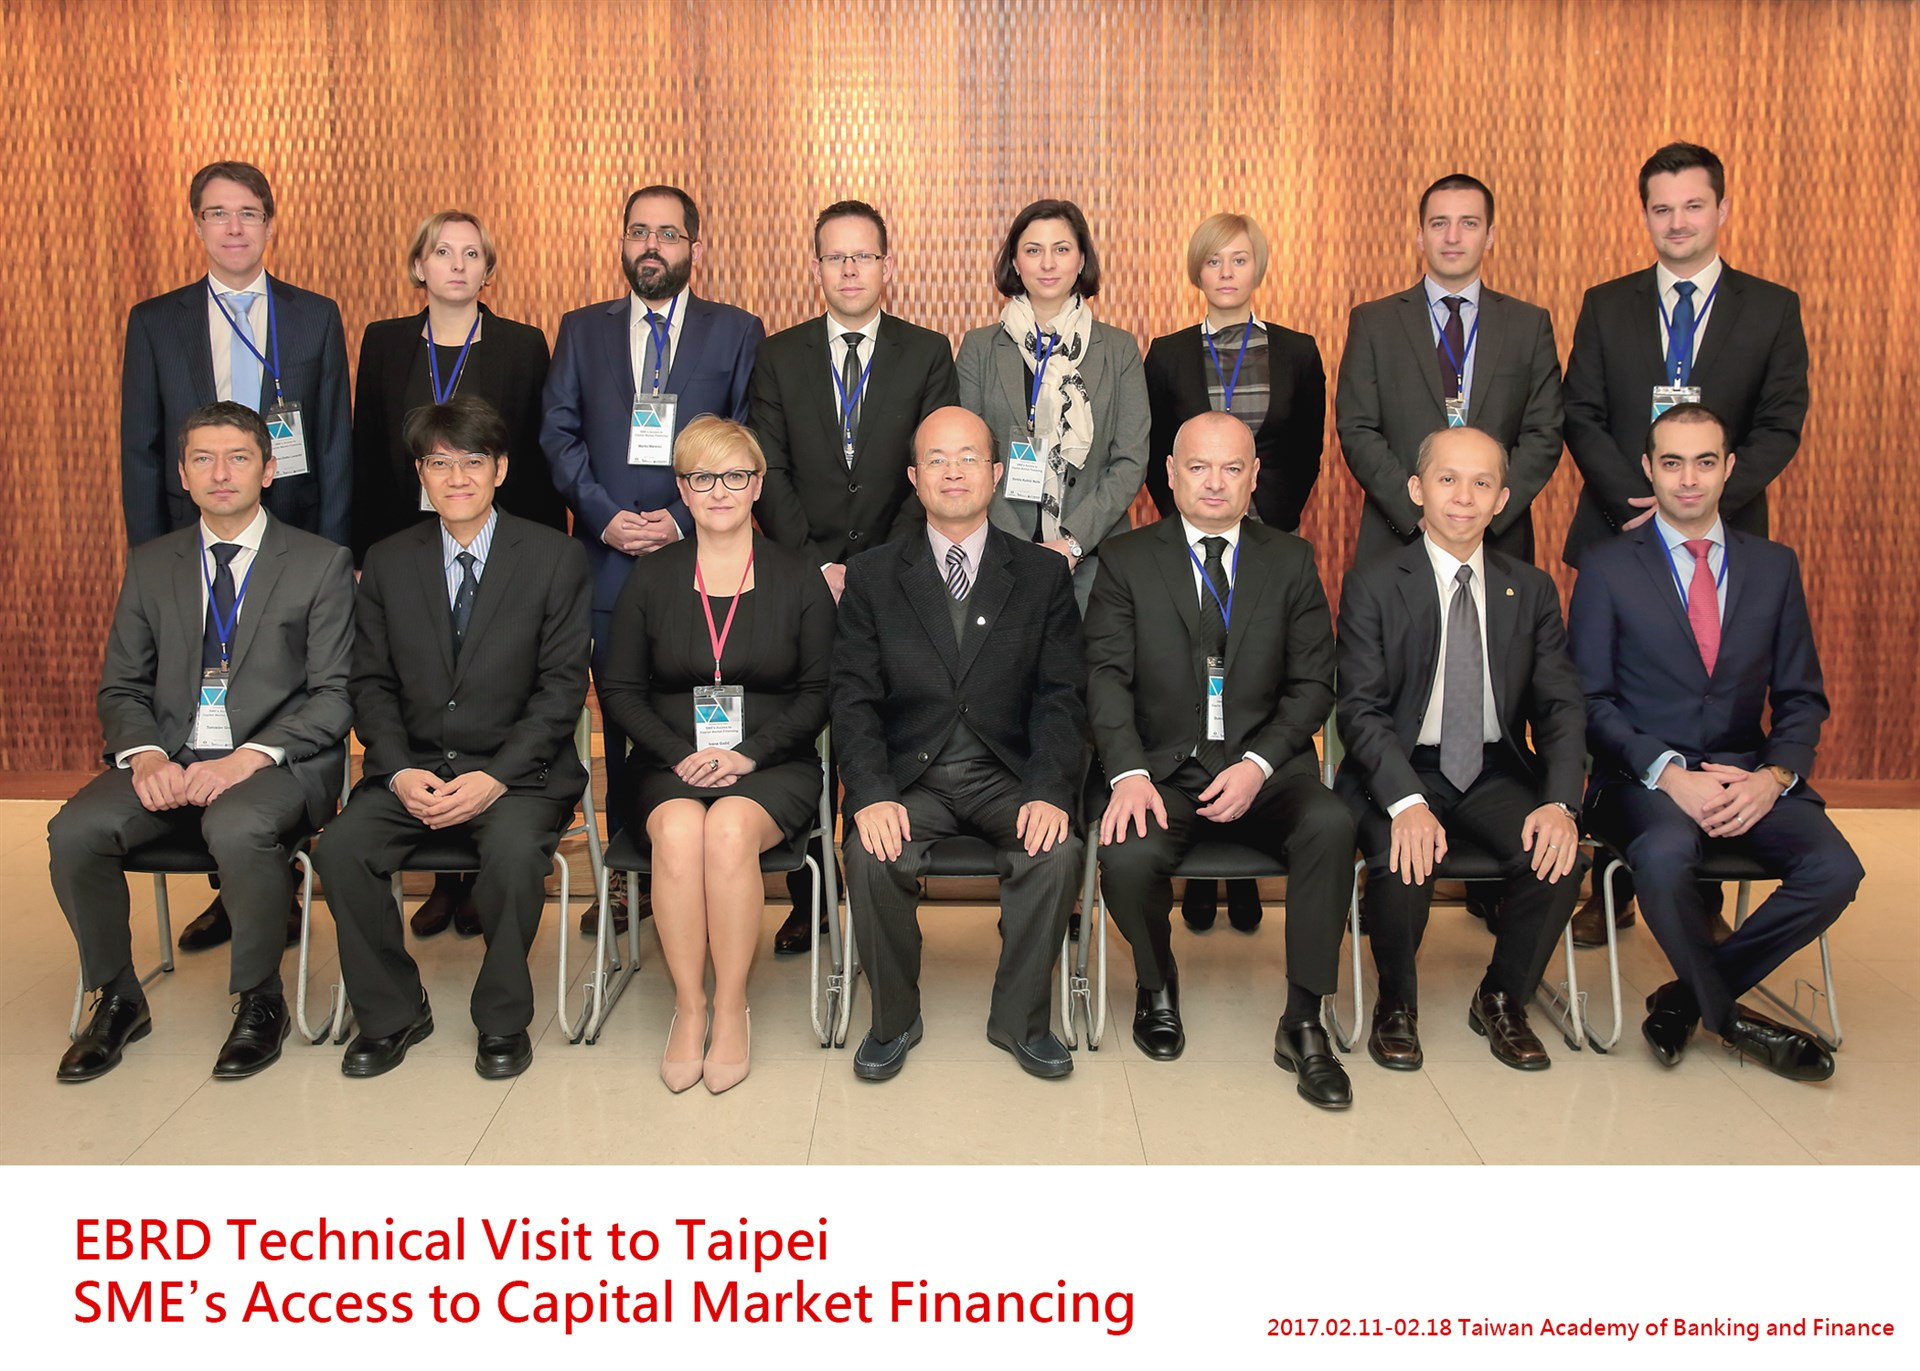 1060213-0217 EBRD Technical Visit to Taipei: SME's Access to Capital Market Financing